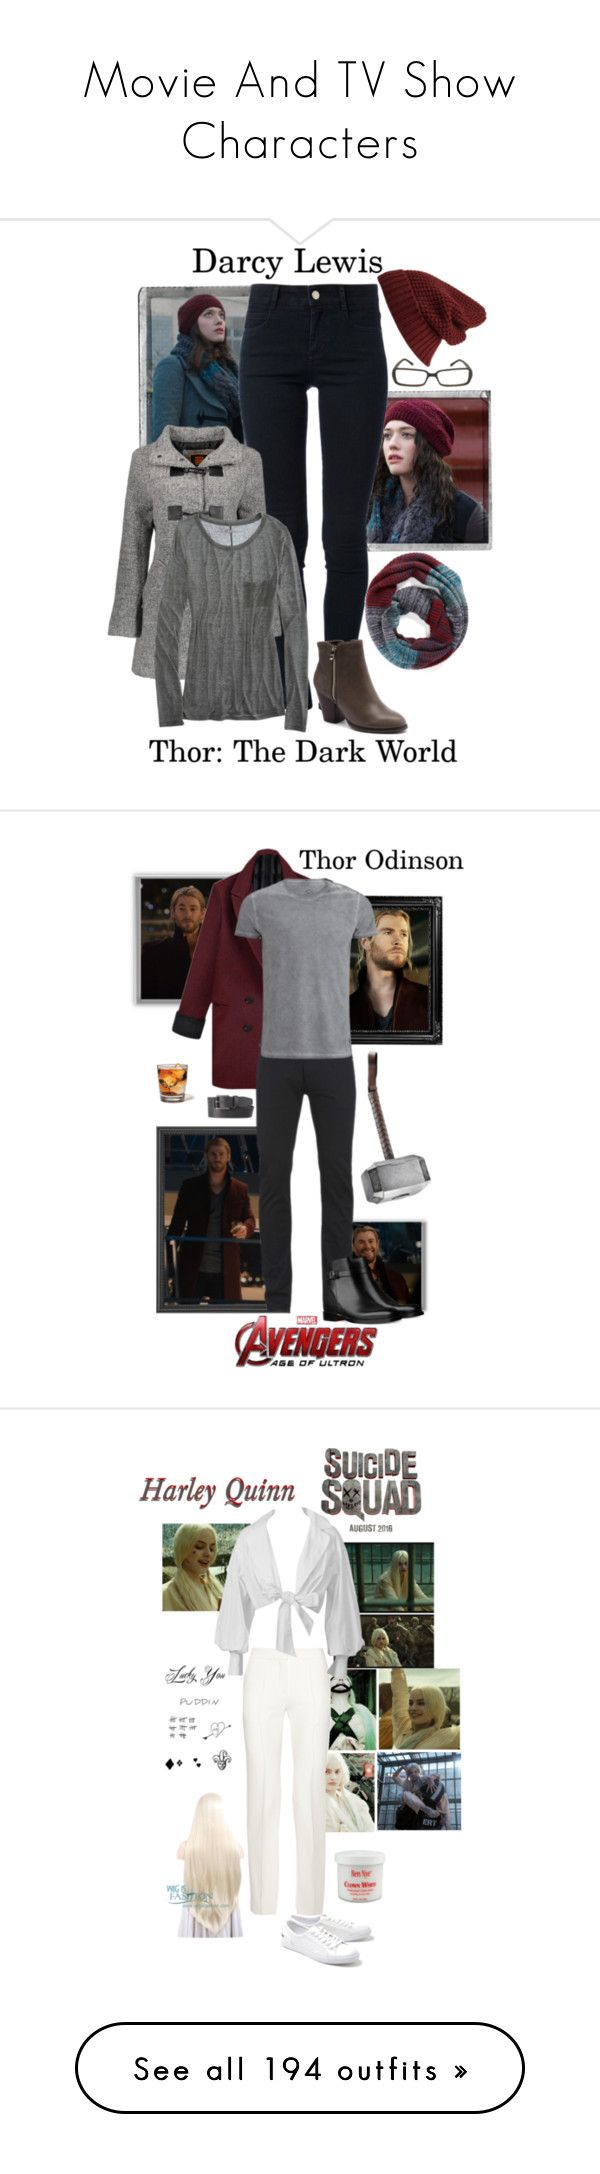 """""""Movie And TV Show Characters"""" by gone-girl ❤ liked on Polyvore featuring Polaroid, Forever 21, STELLA McCARTNEY, Fendi, David & Young, Django & Juliette, Lady von Hart, American Eagle Outfitters, Paul Smith and Belstaff"""